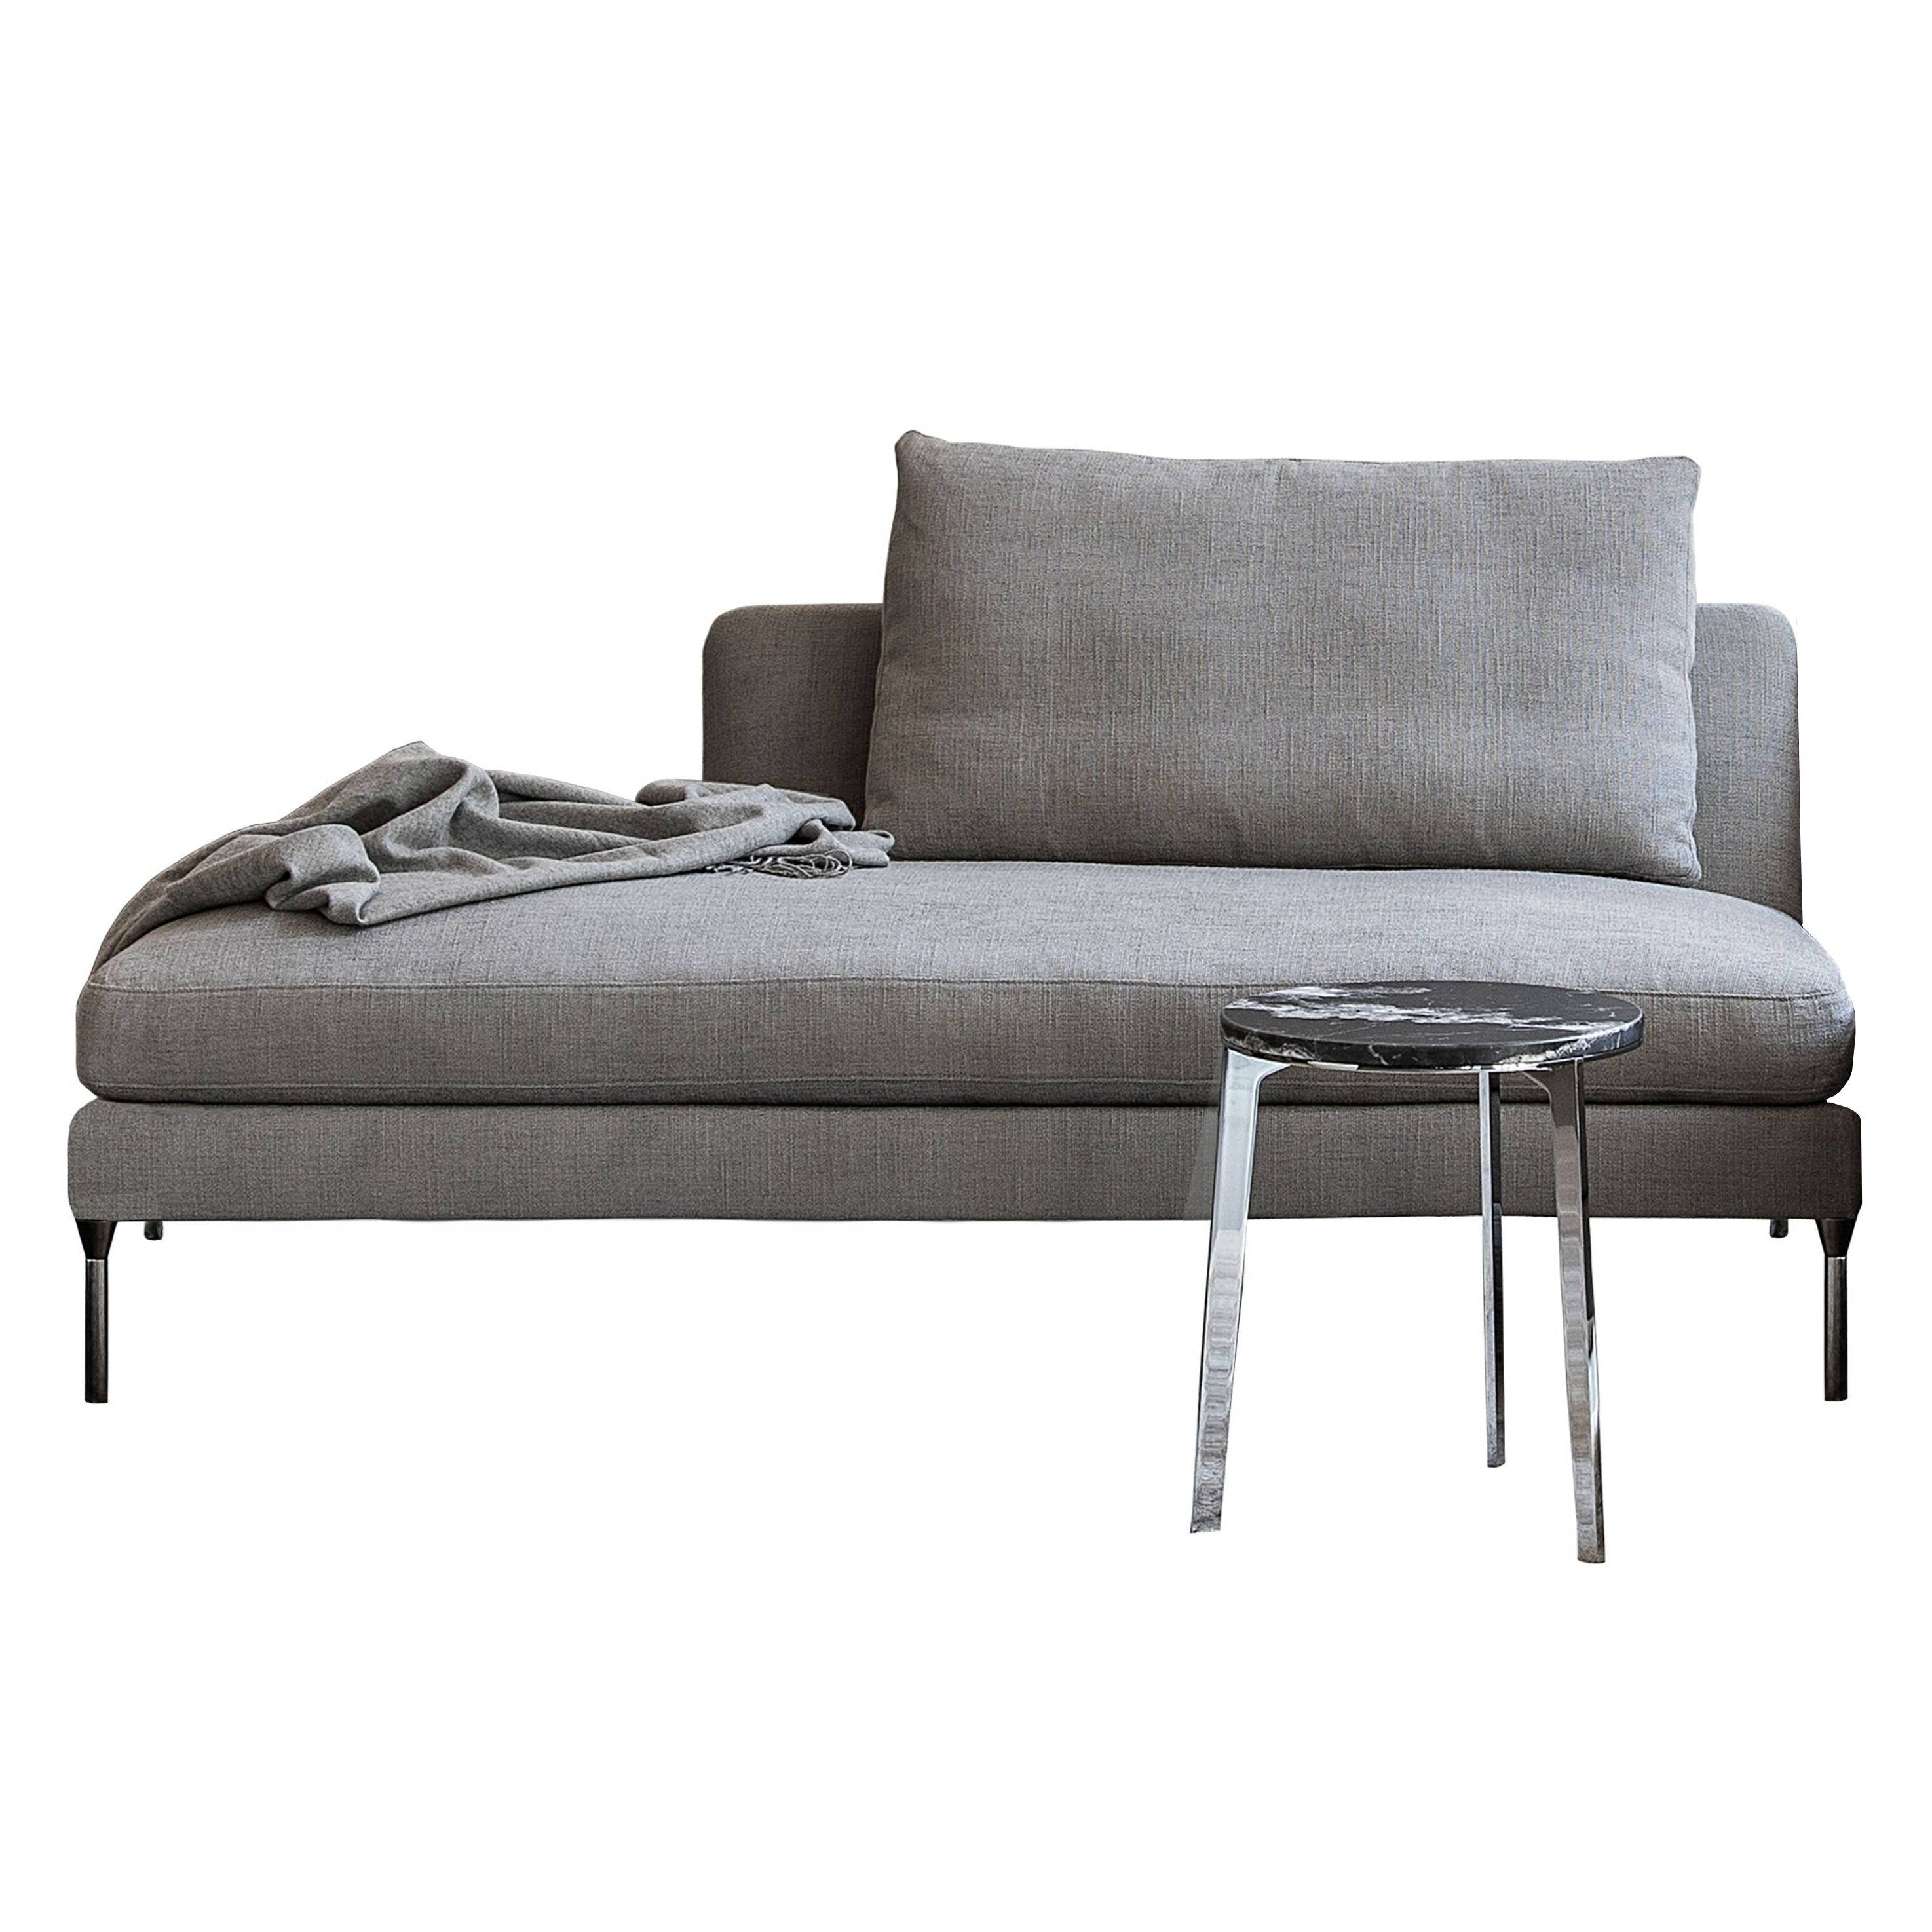 Delta Sectional Sofa Pieces: Shortback